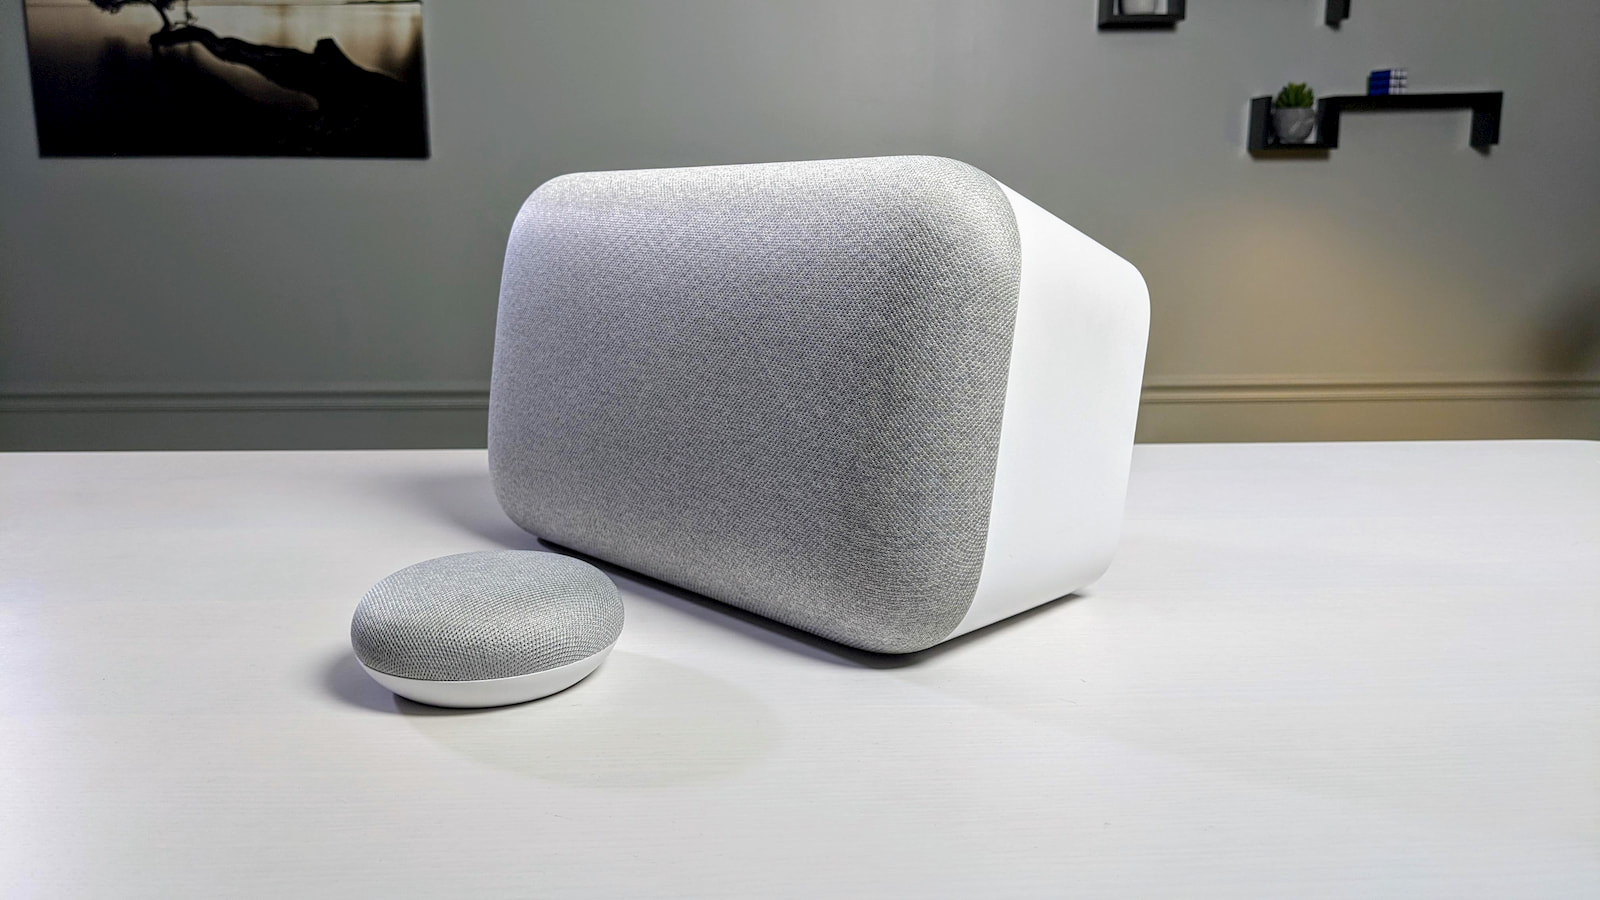 Google may be fixing my biggest gripe about its smart speakers